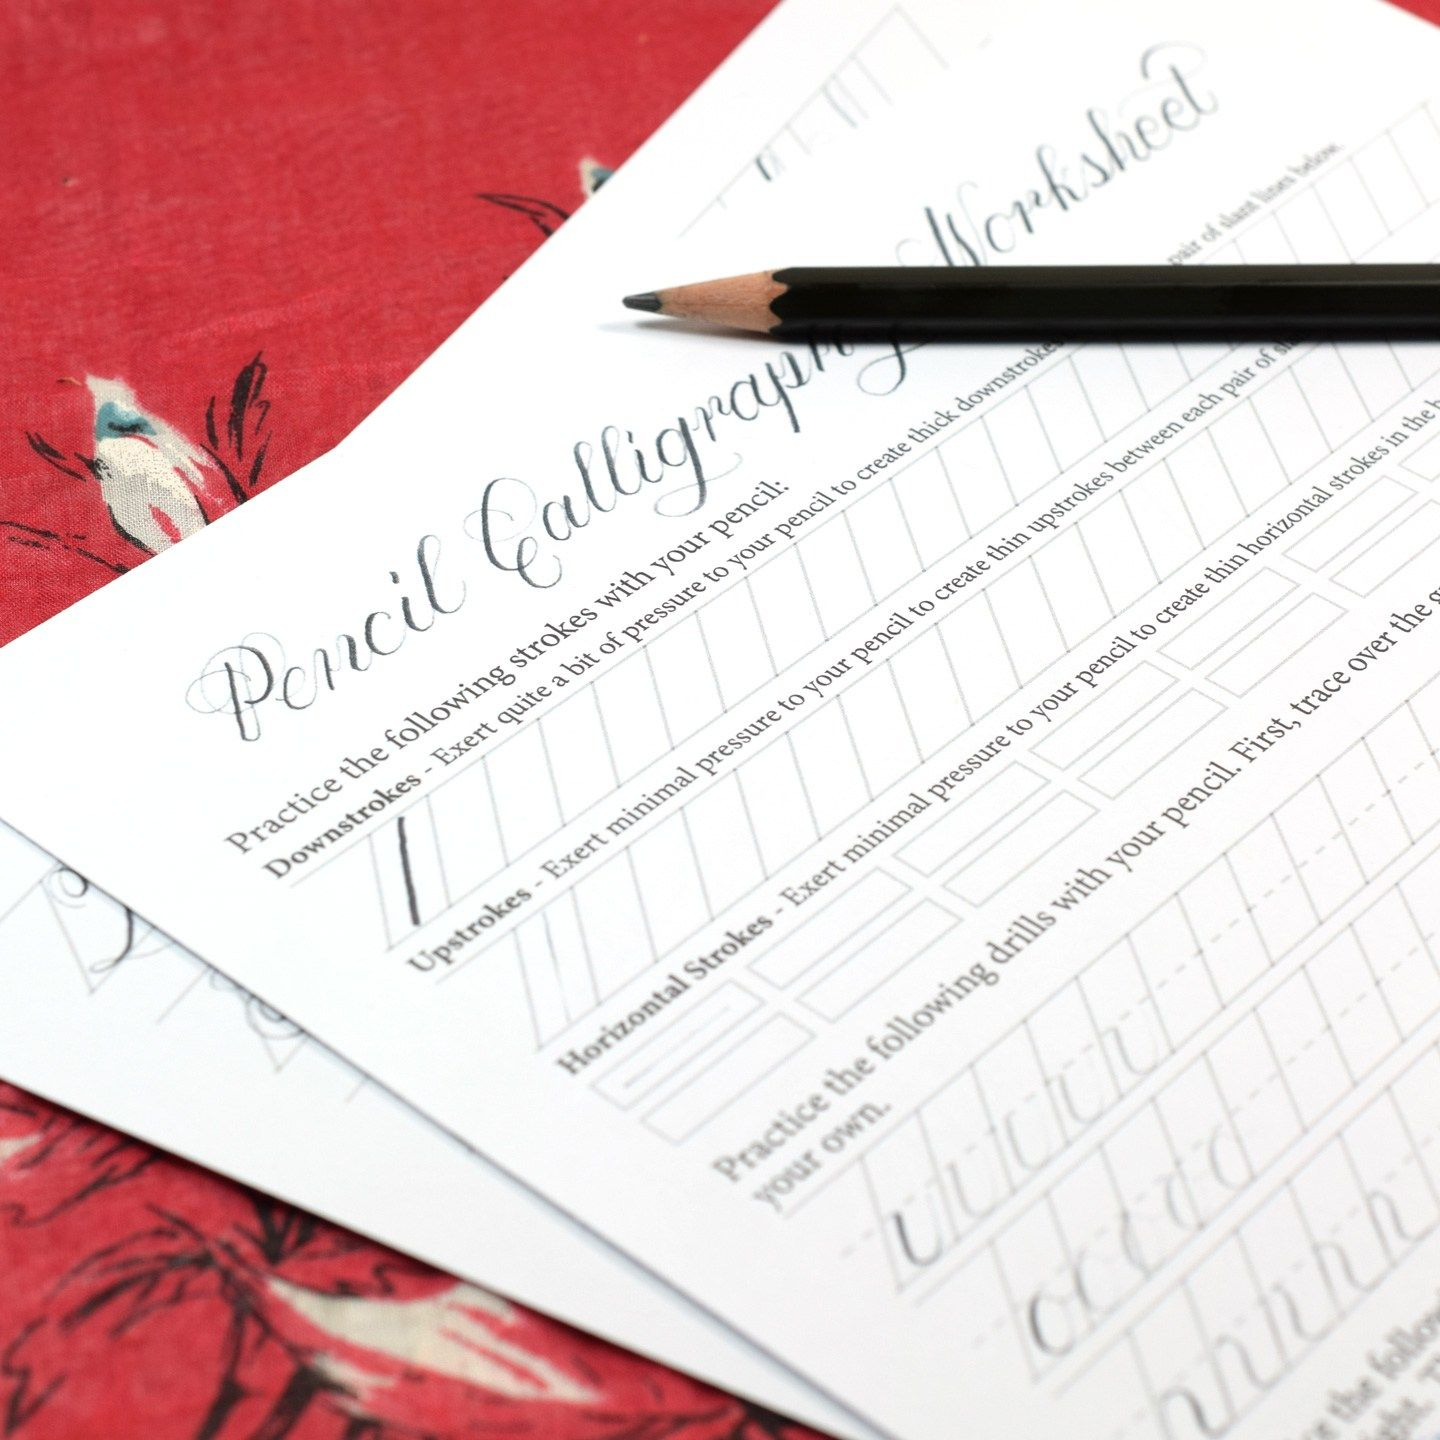 Printable Pencil Calligraphy Worksheet Mit Bildern